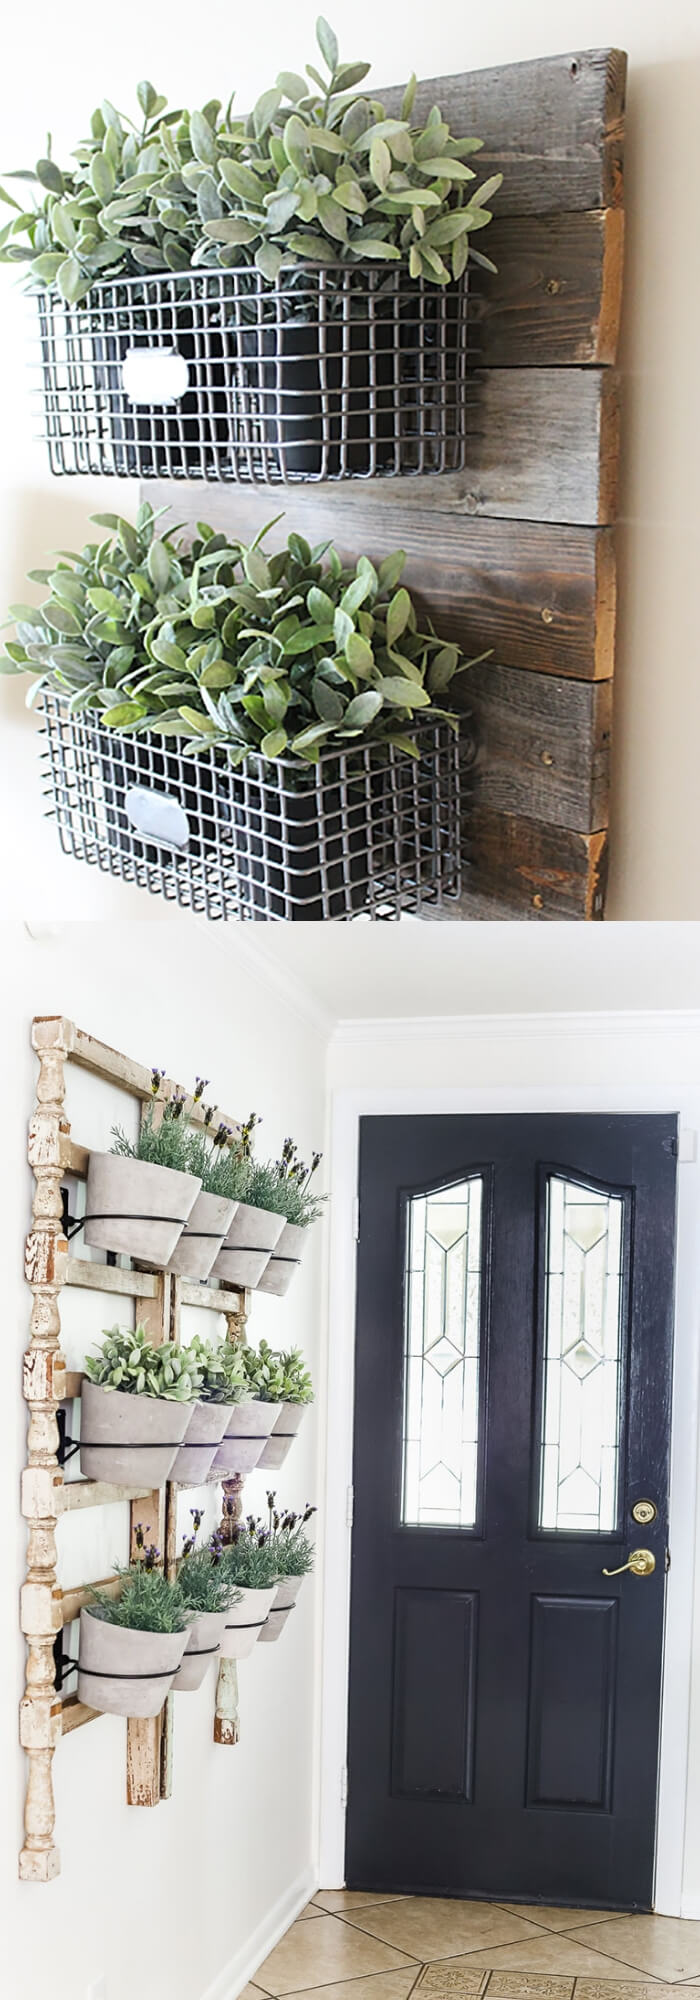 Farmhouse Hanging Wire Wall Pieces | Best Farmhouse Indoor Plant Decor Ideas & Designs